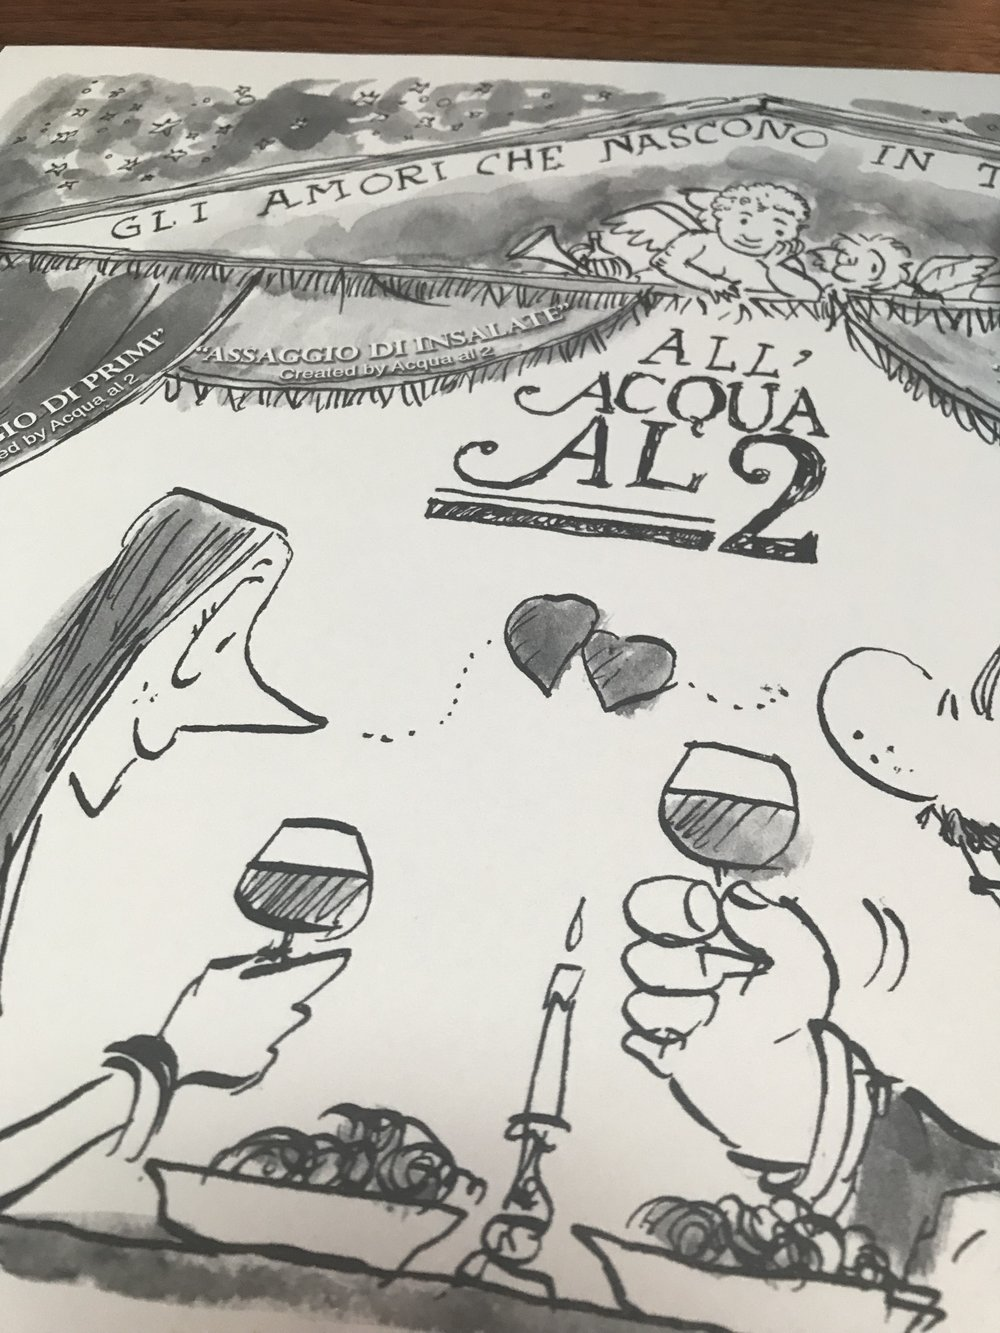 A placemat at Acqua al 2